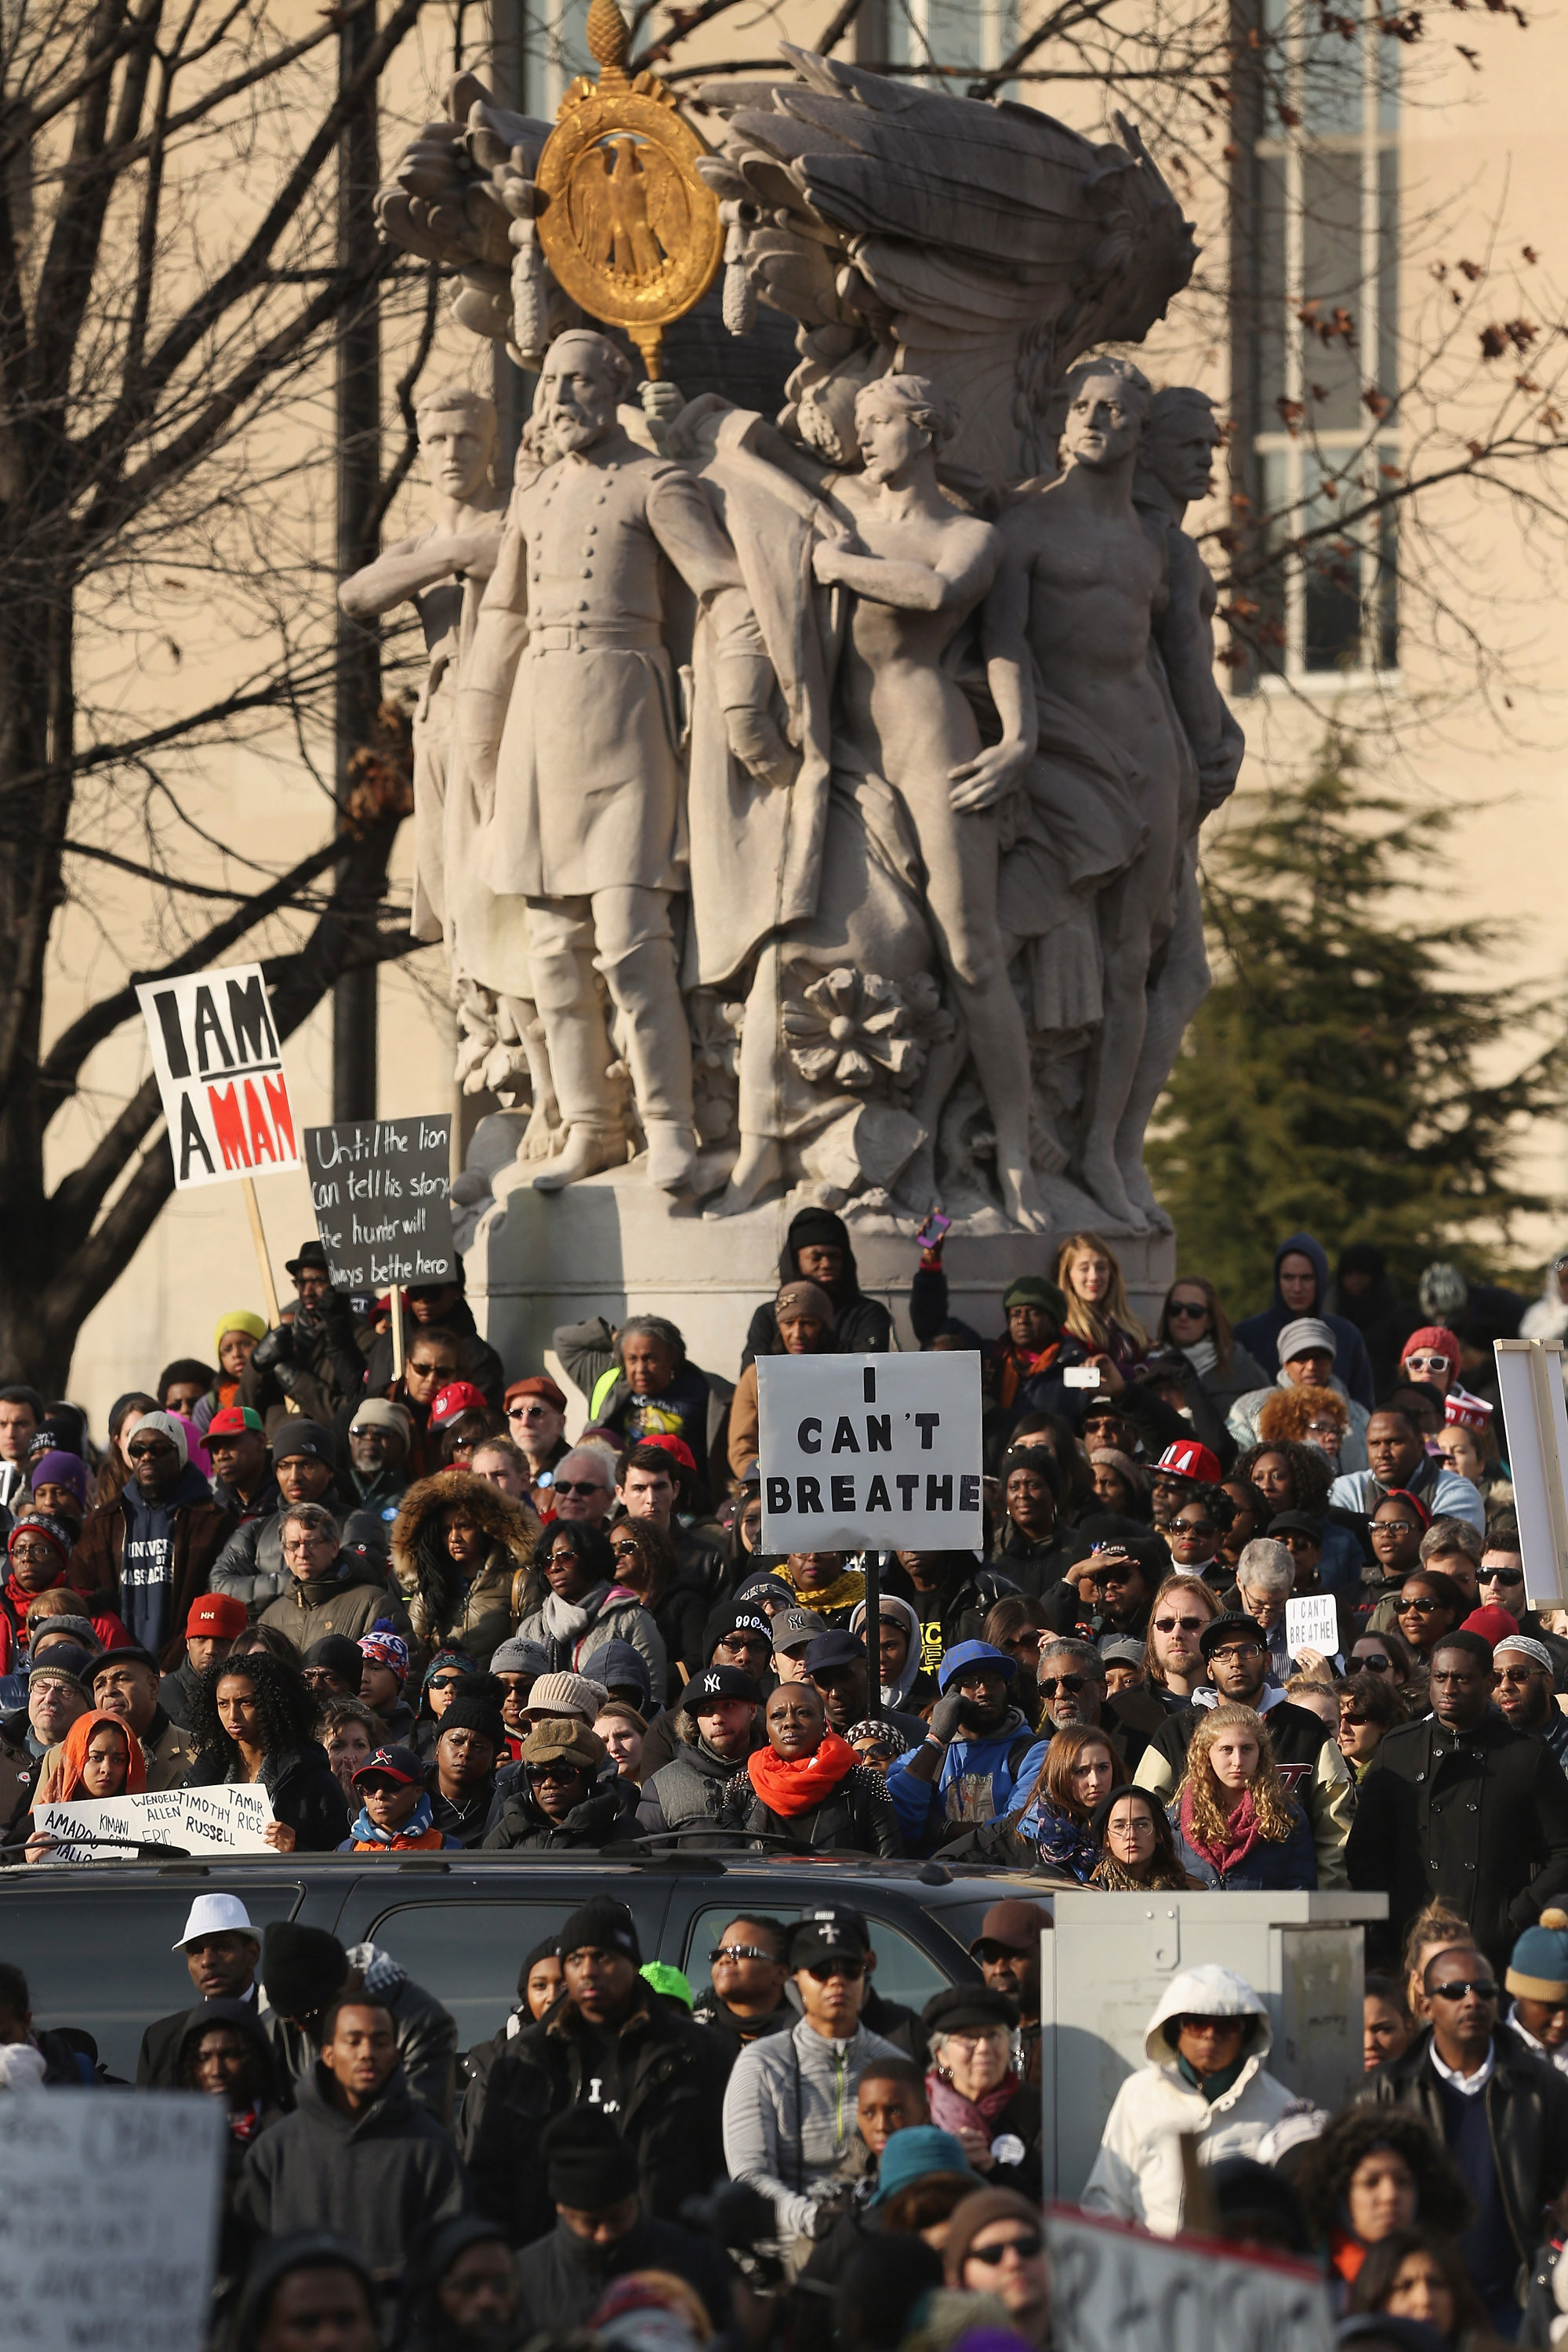 Thousands of people gather in the nation's capital for the 'Justice For All' rally and march against police brutality and the killing of unarmed black men by police, December 13, 2014 in Washington, DC.